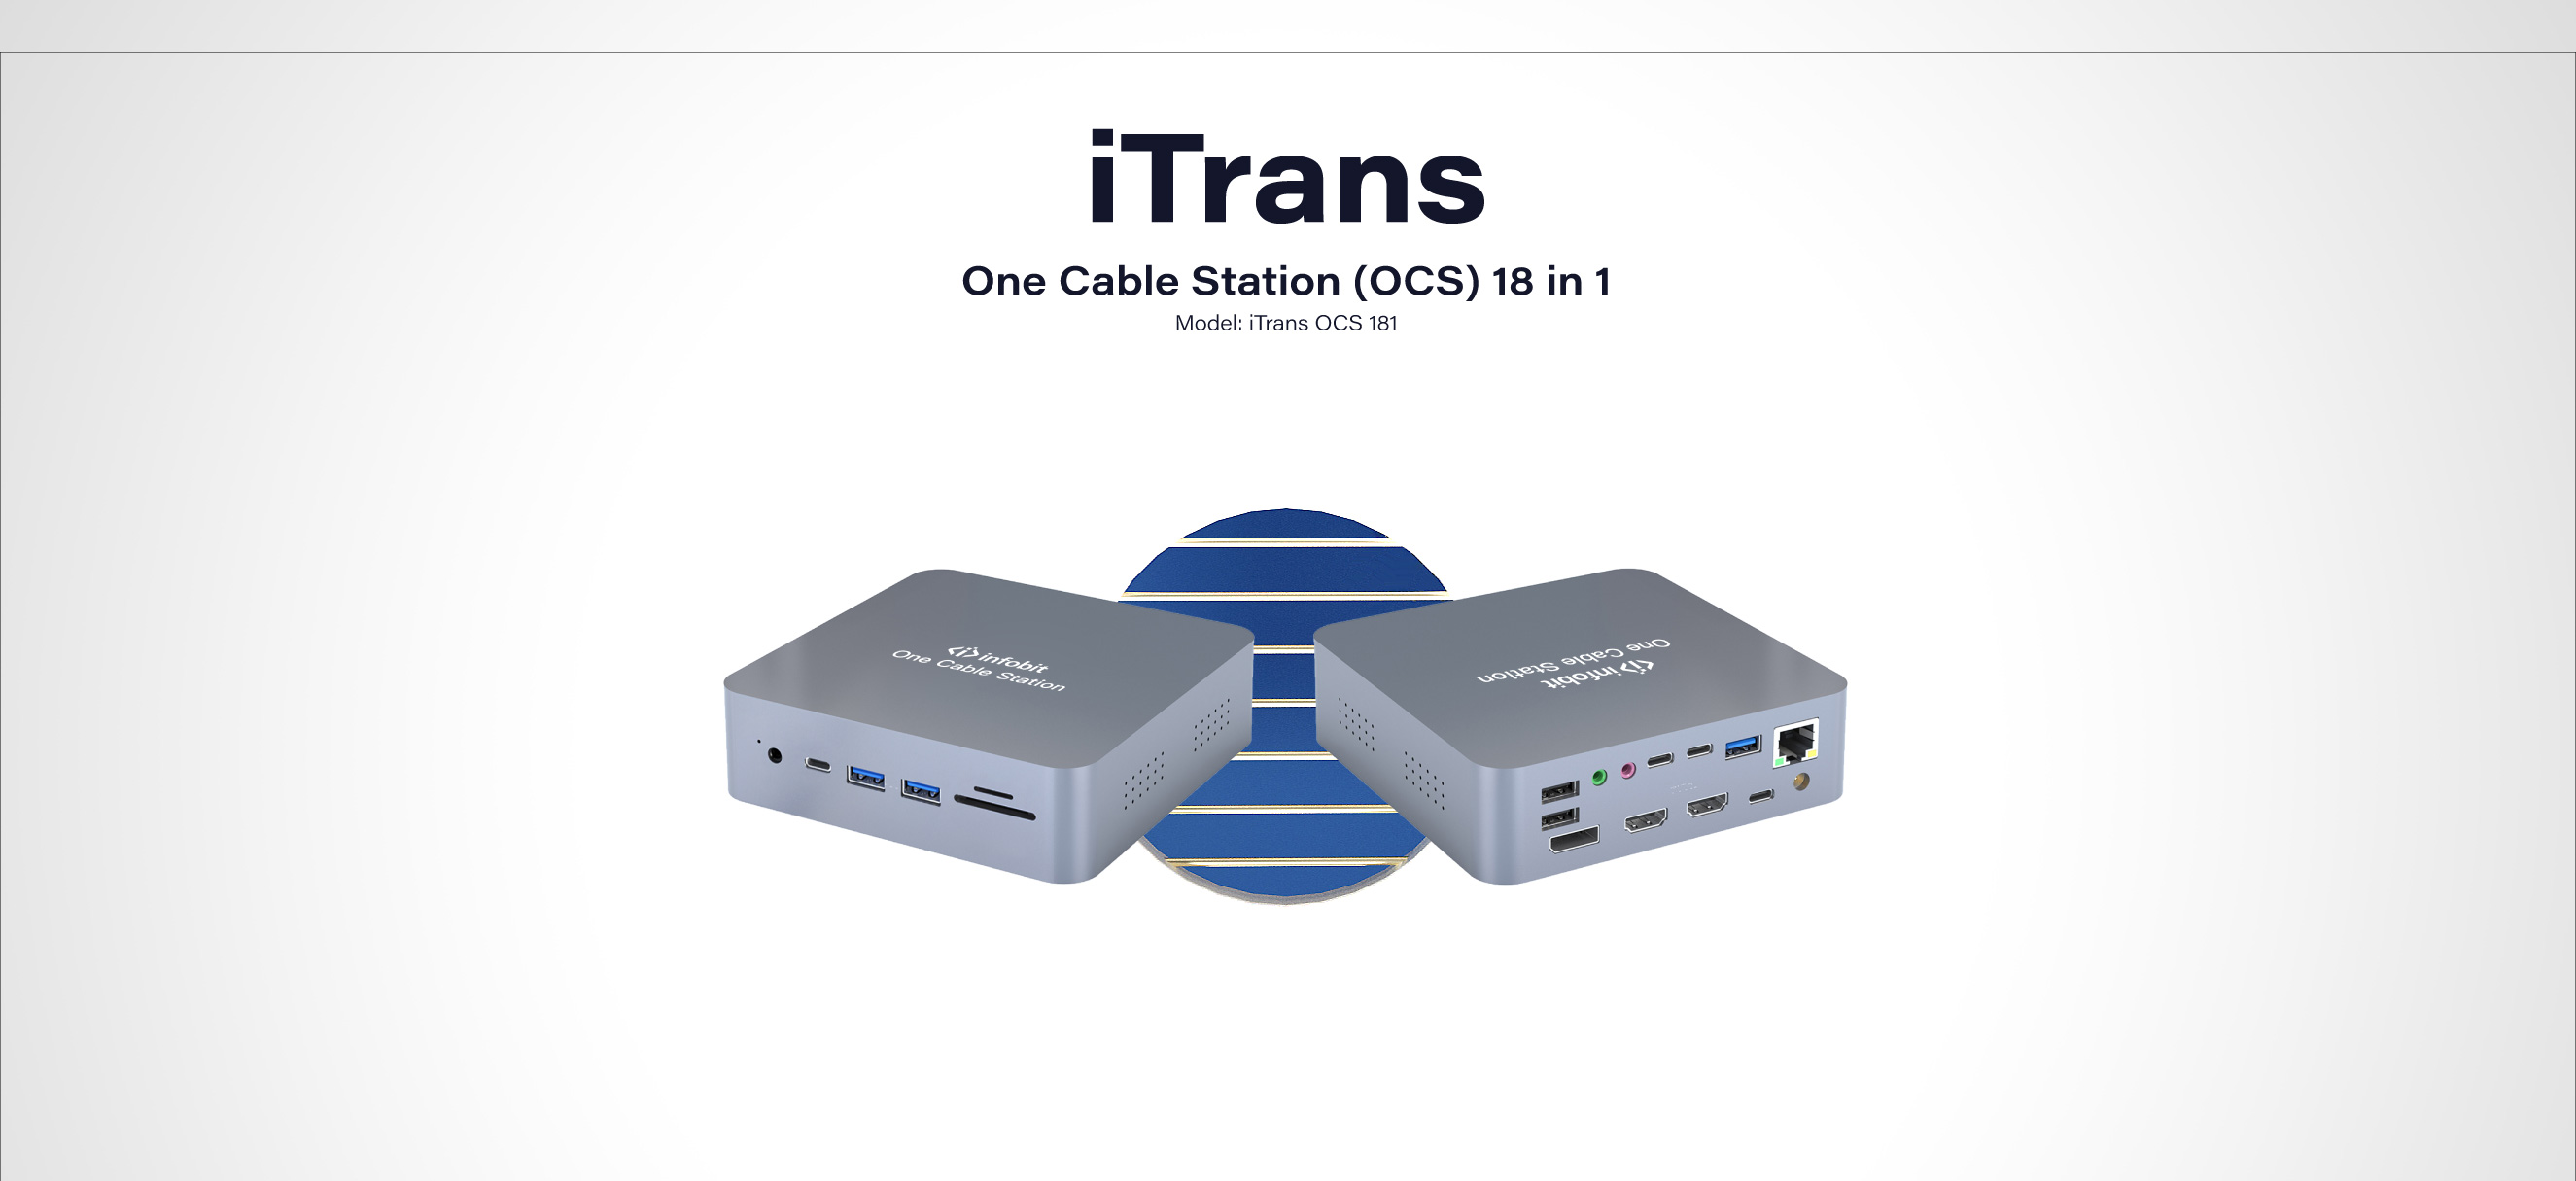 iTrans OCS 181 One Cable Station 18 in 1